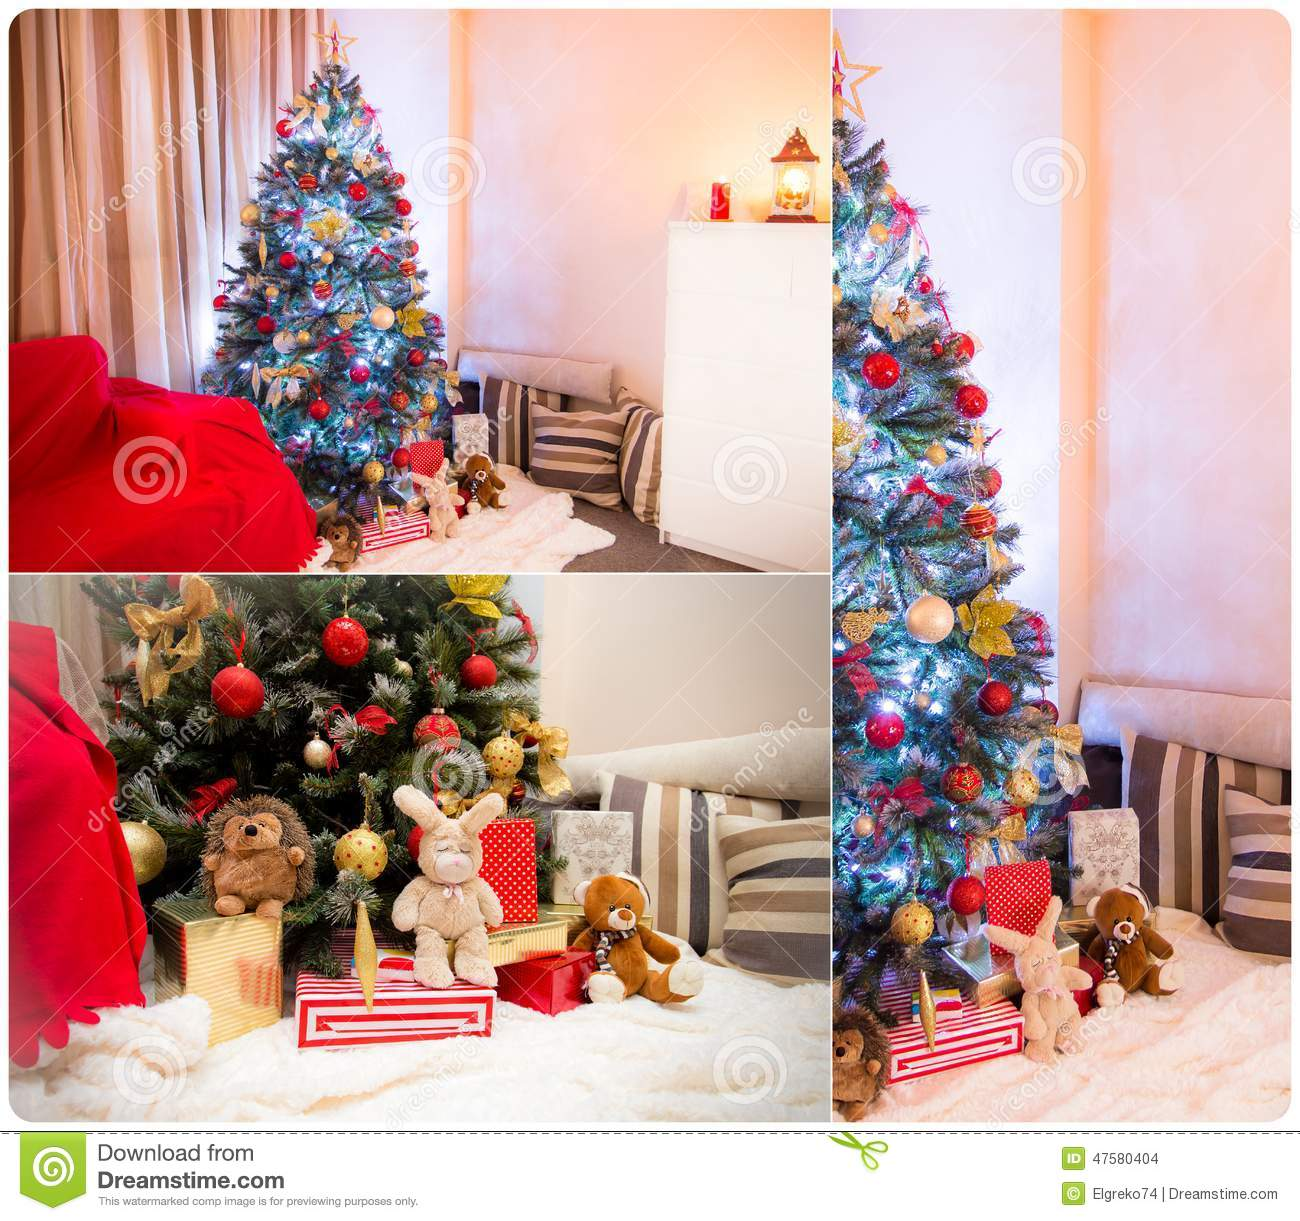 Collage of decorated Christmas tree in a room